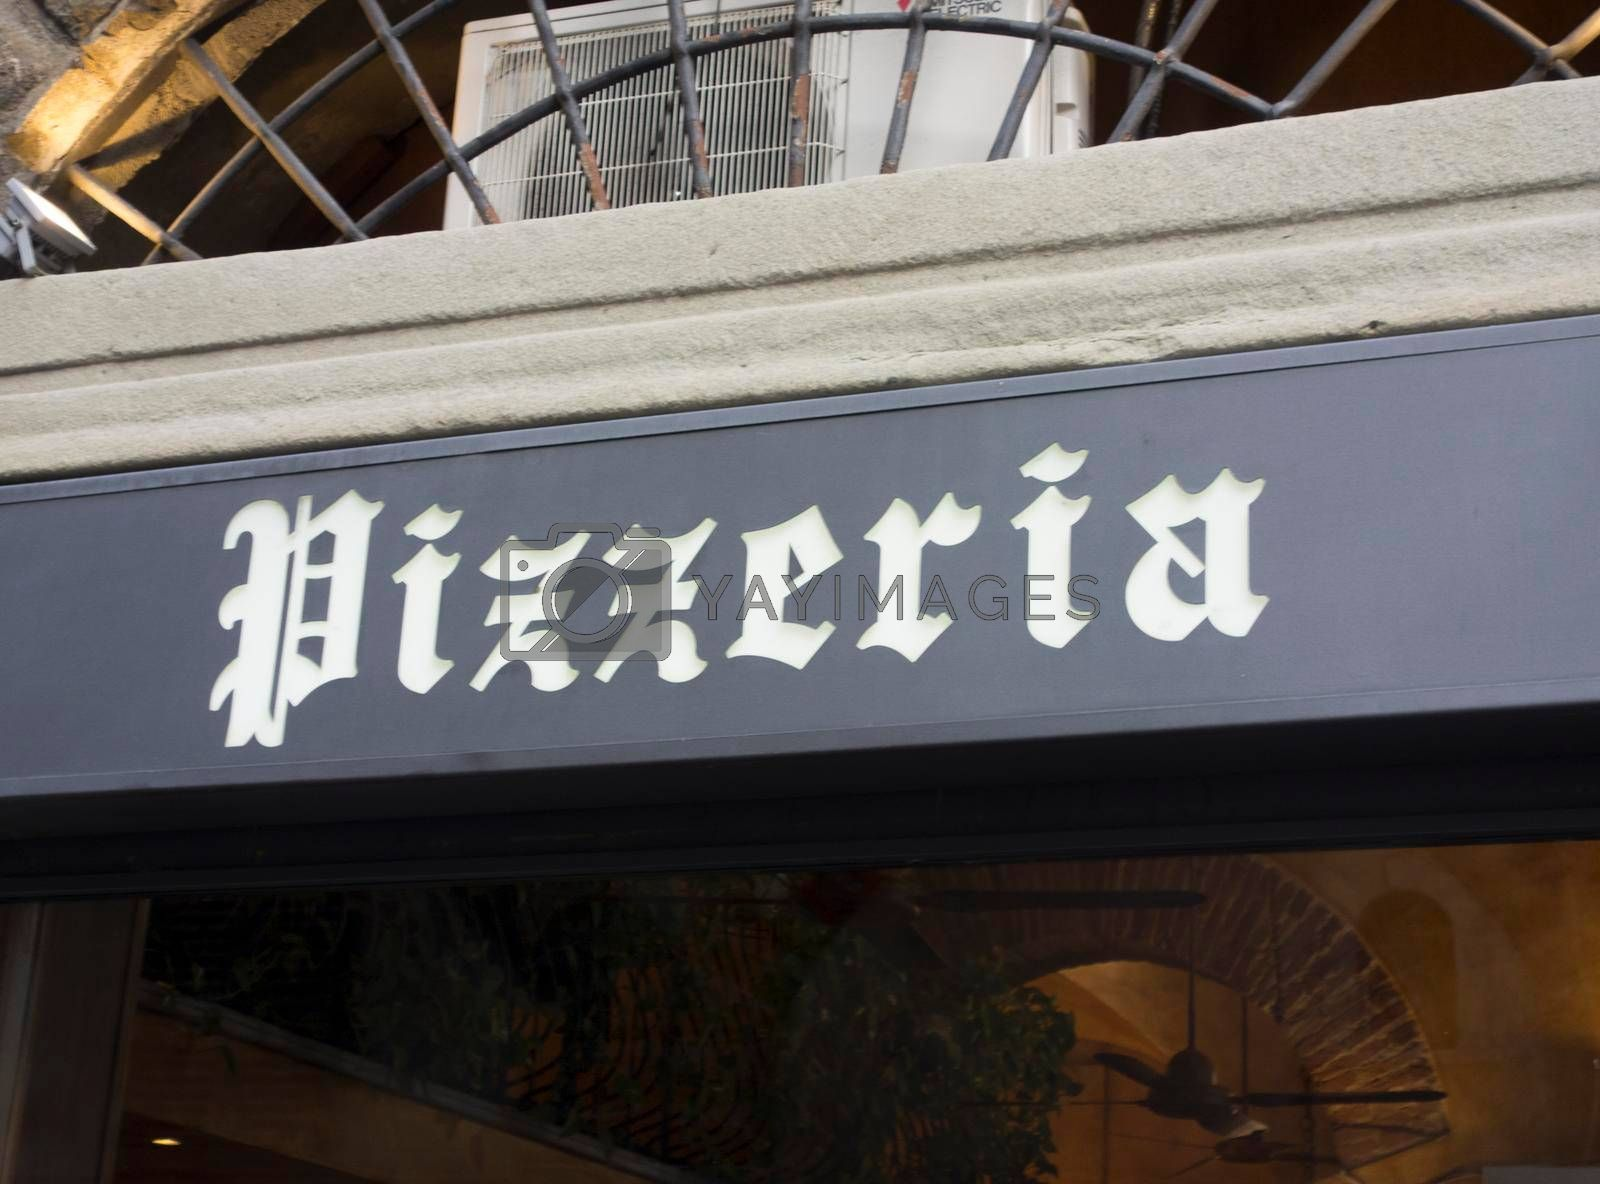 a pizzeria or pizzaria sign, a place for eating and ordering pizza